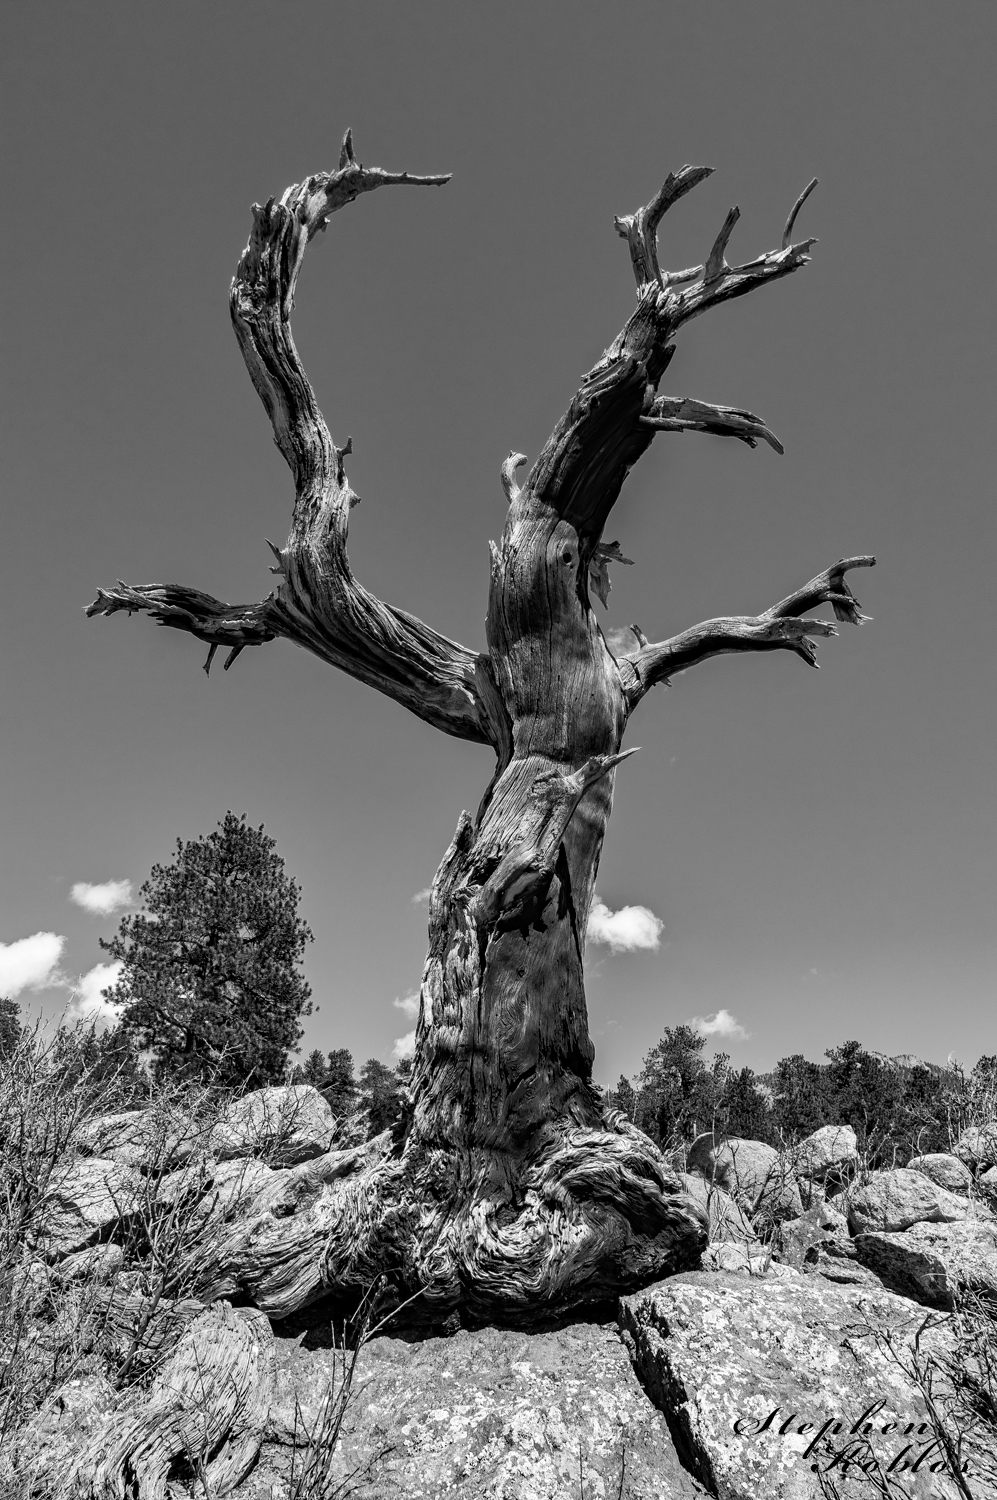 Dead tree still standing in Rocky Mountain National Park. Limited Edition of 100